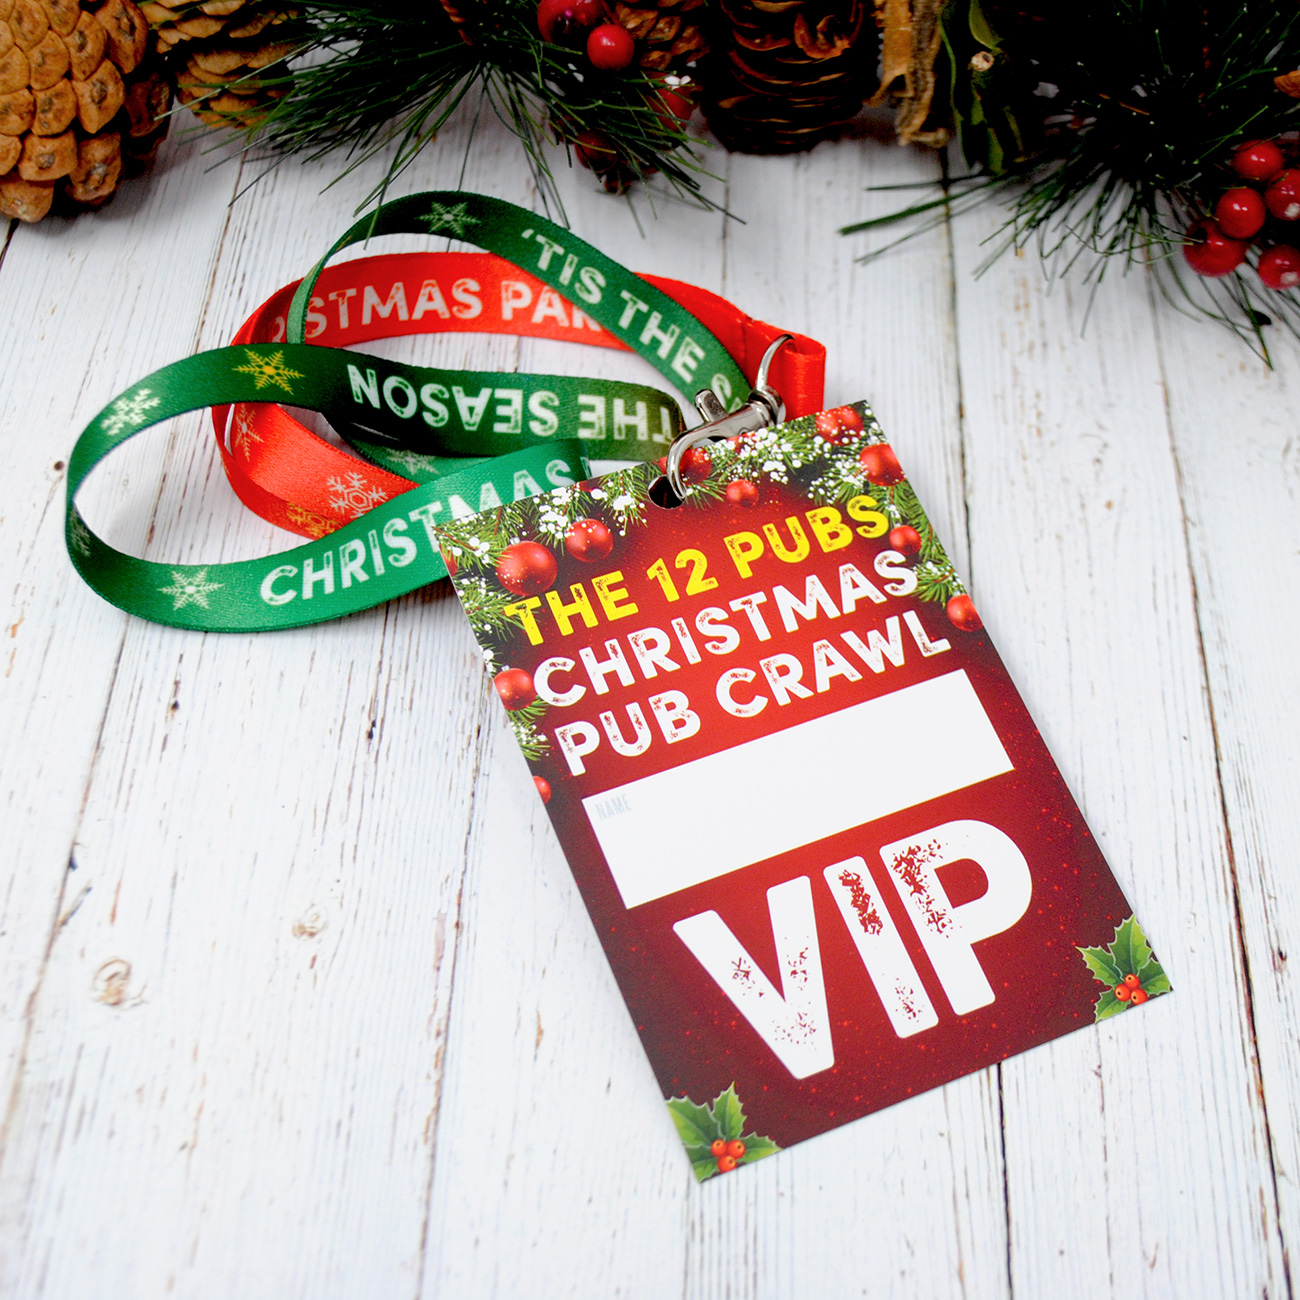 12 pubs christmas pub crawl lanyard guides